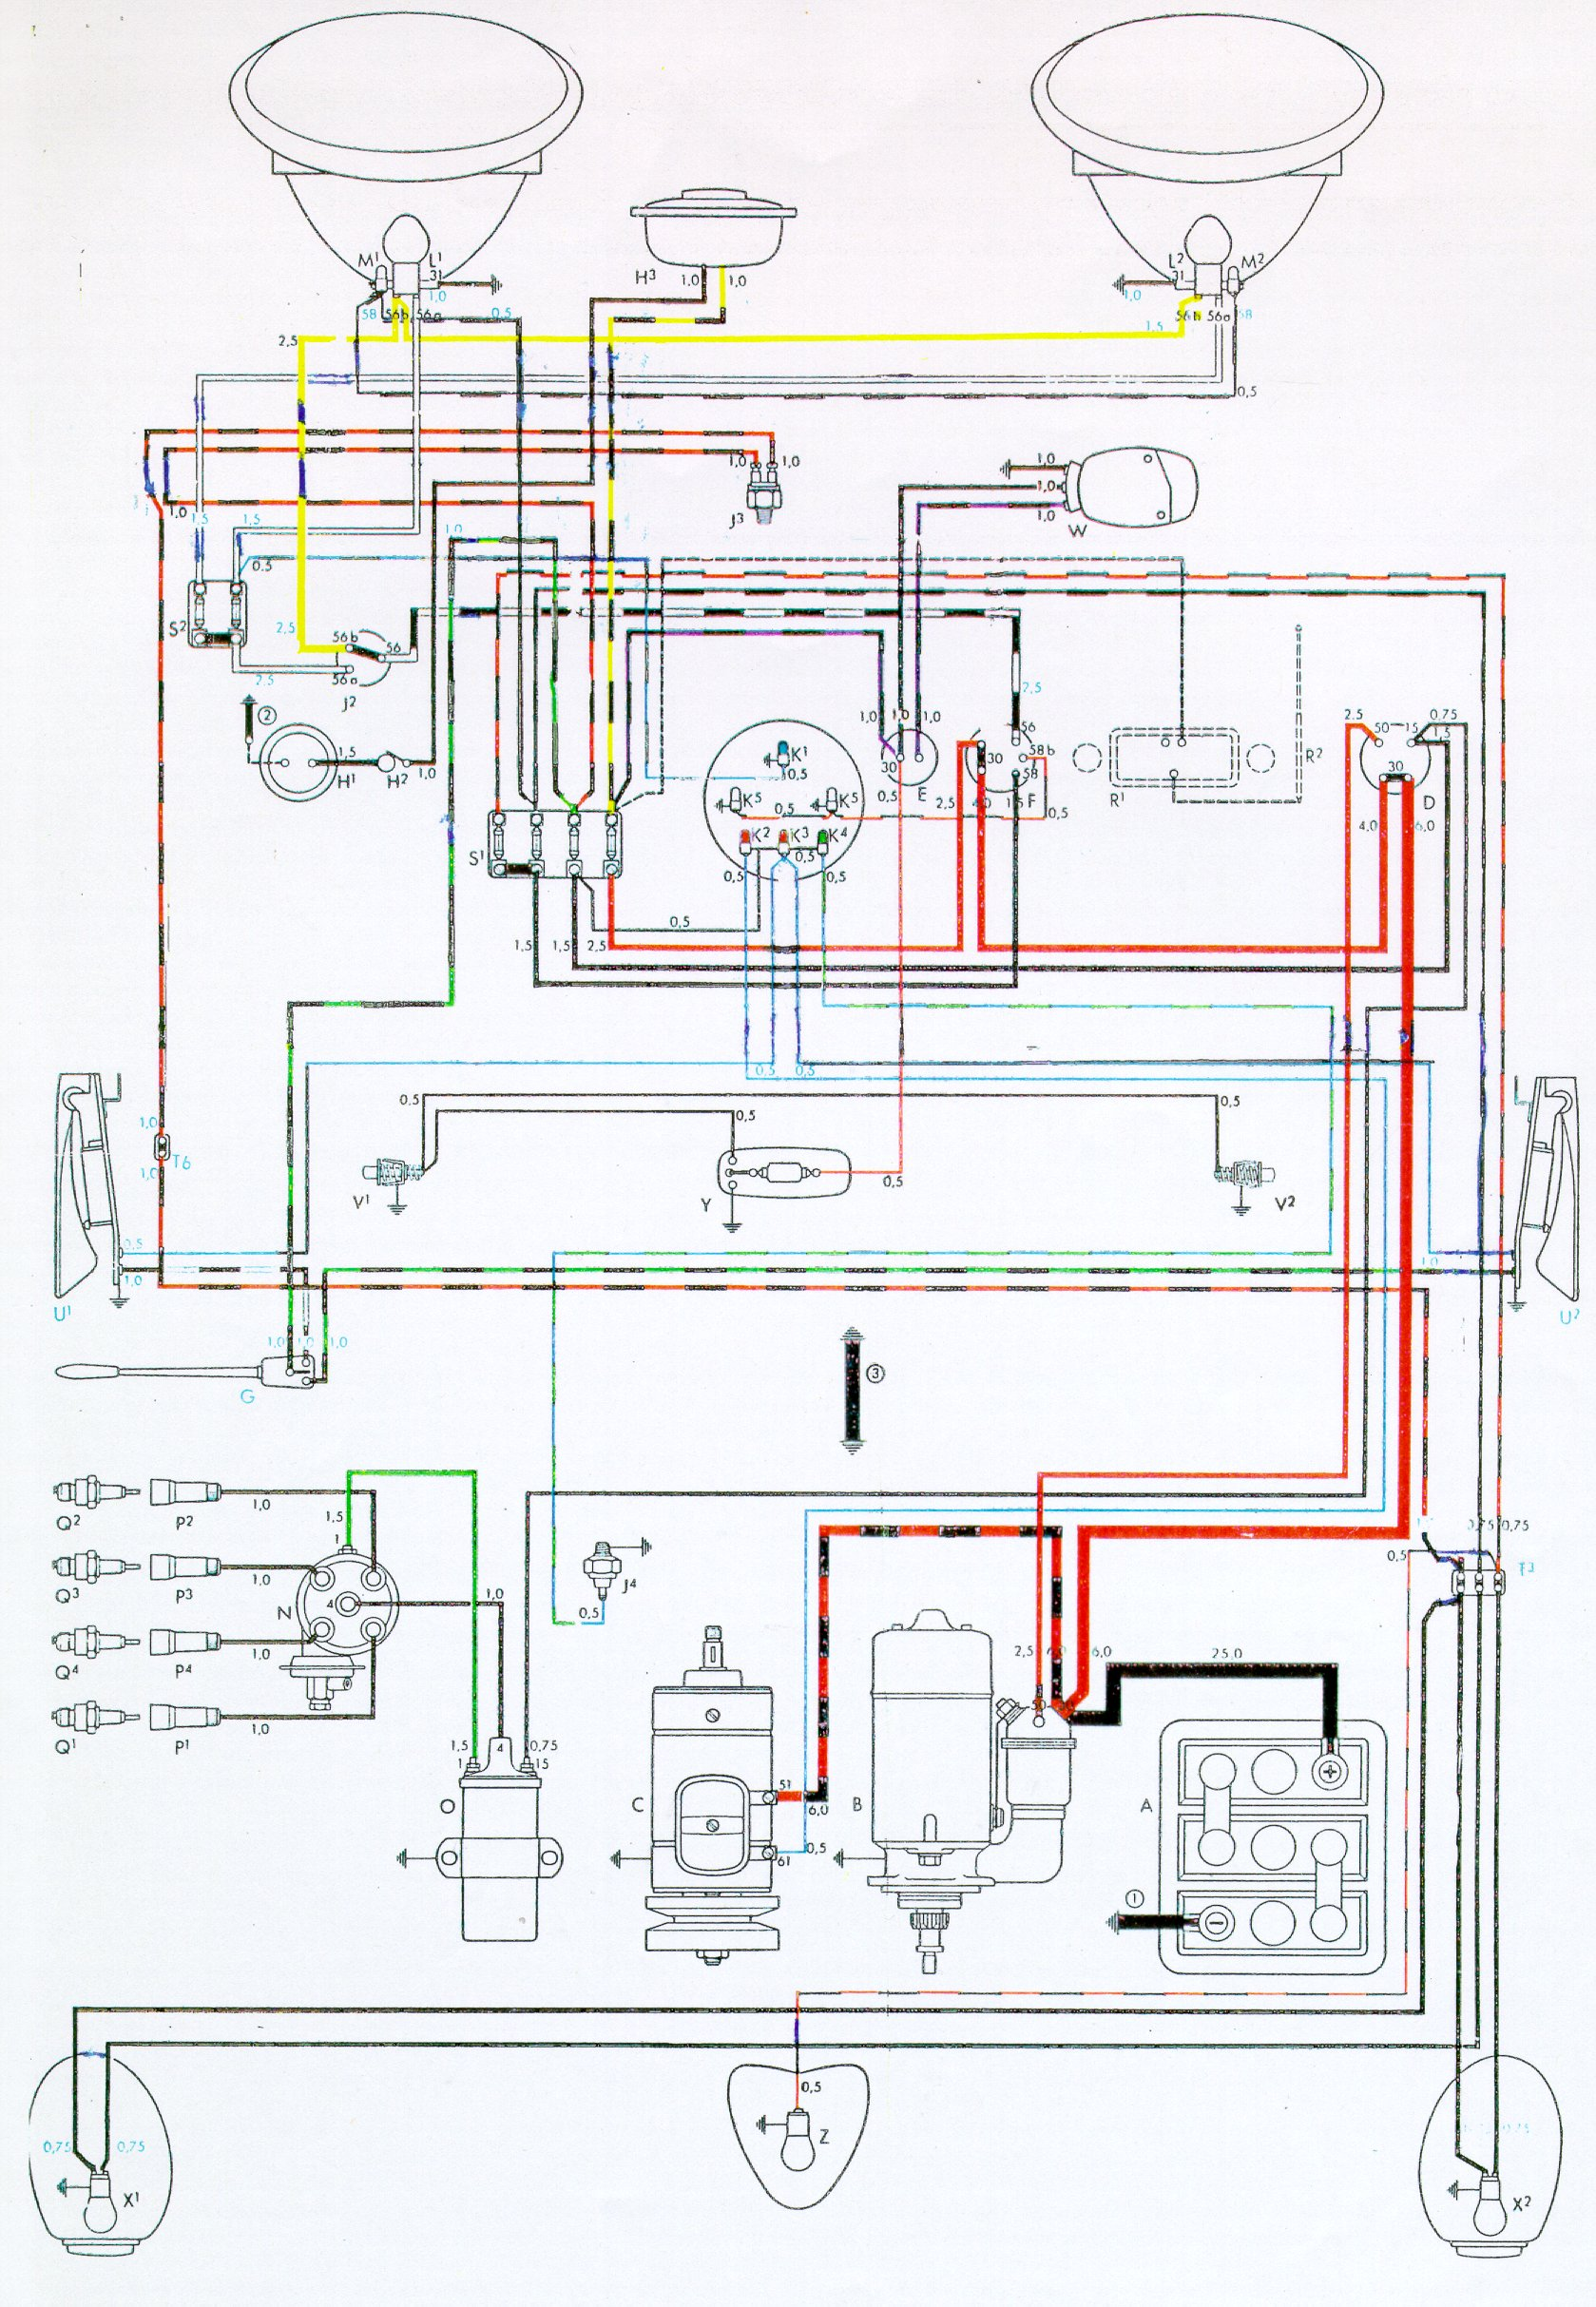 bug 54 vw wiring diagrams beetle wiring diagram to fix a/c fan at readyjetset.co